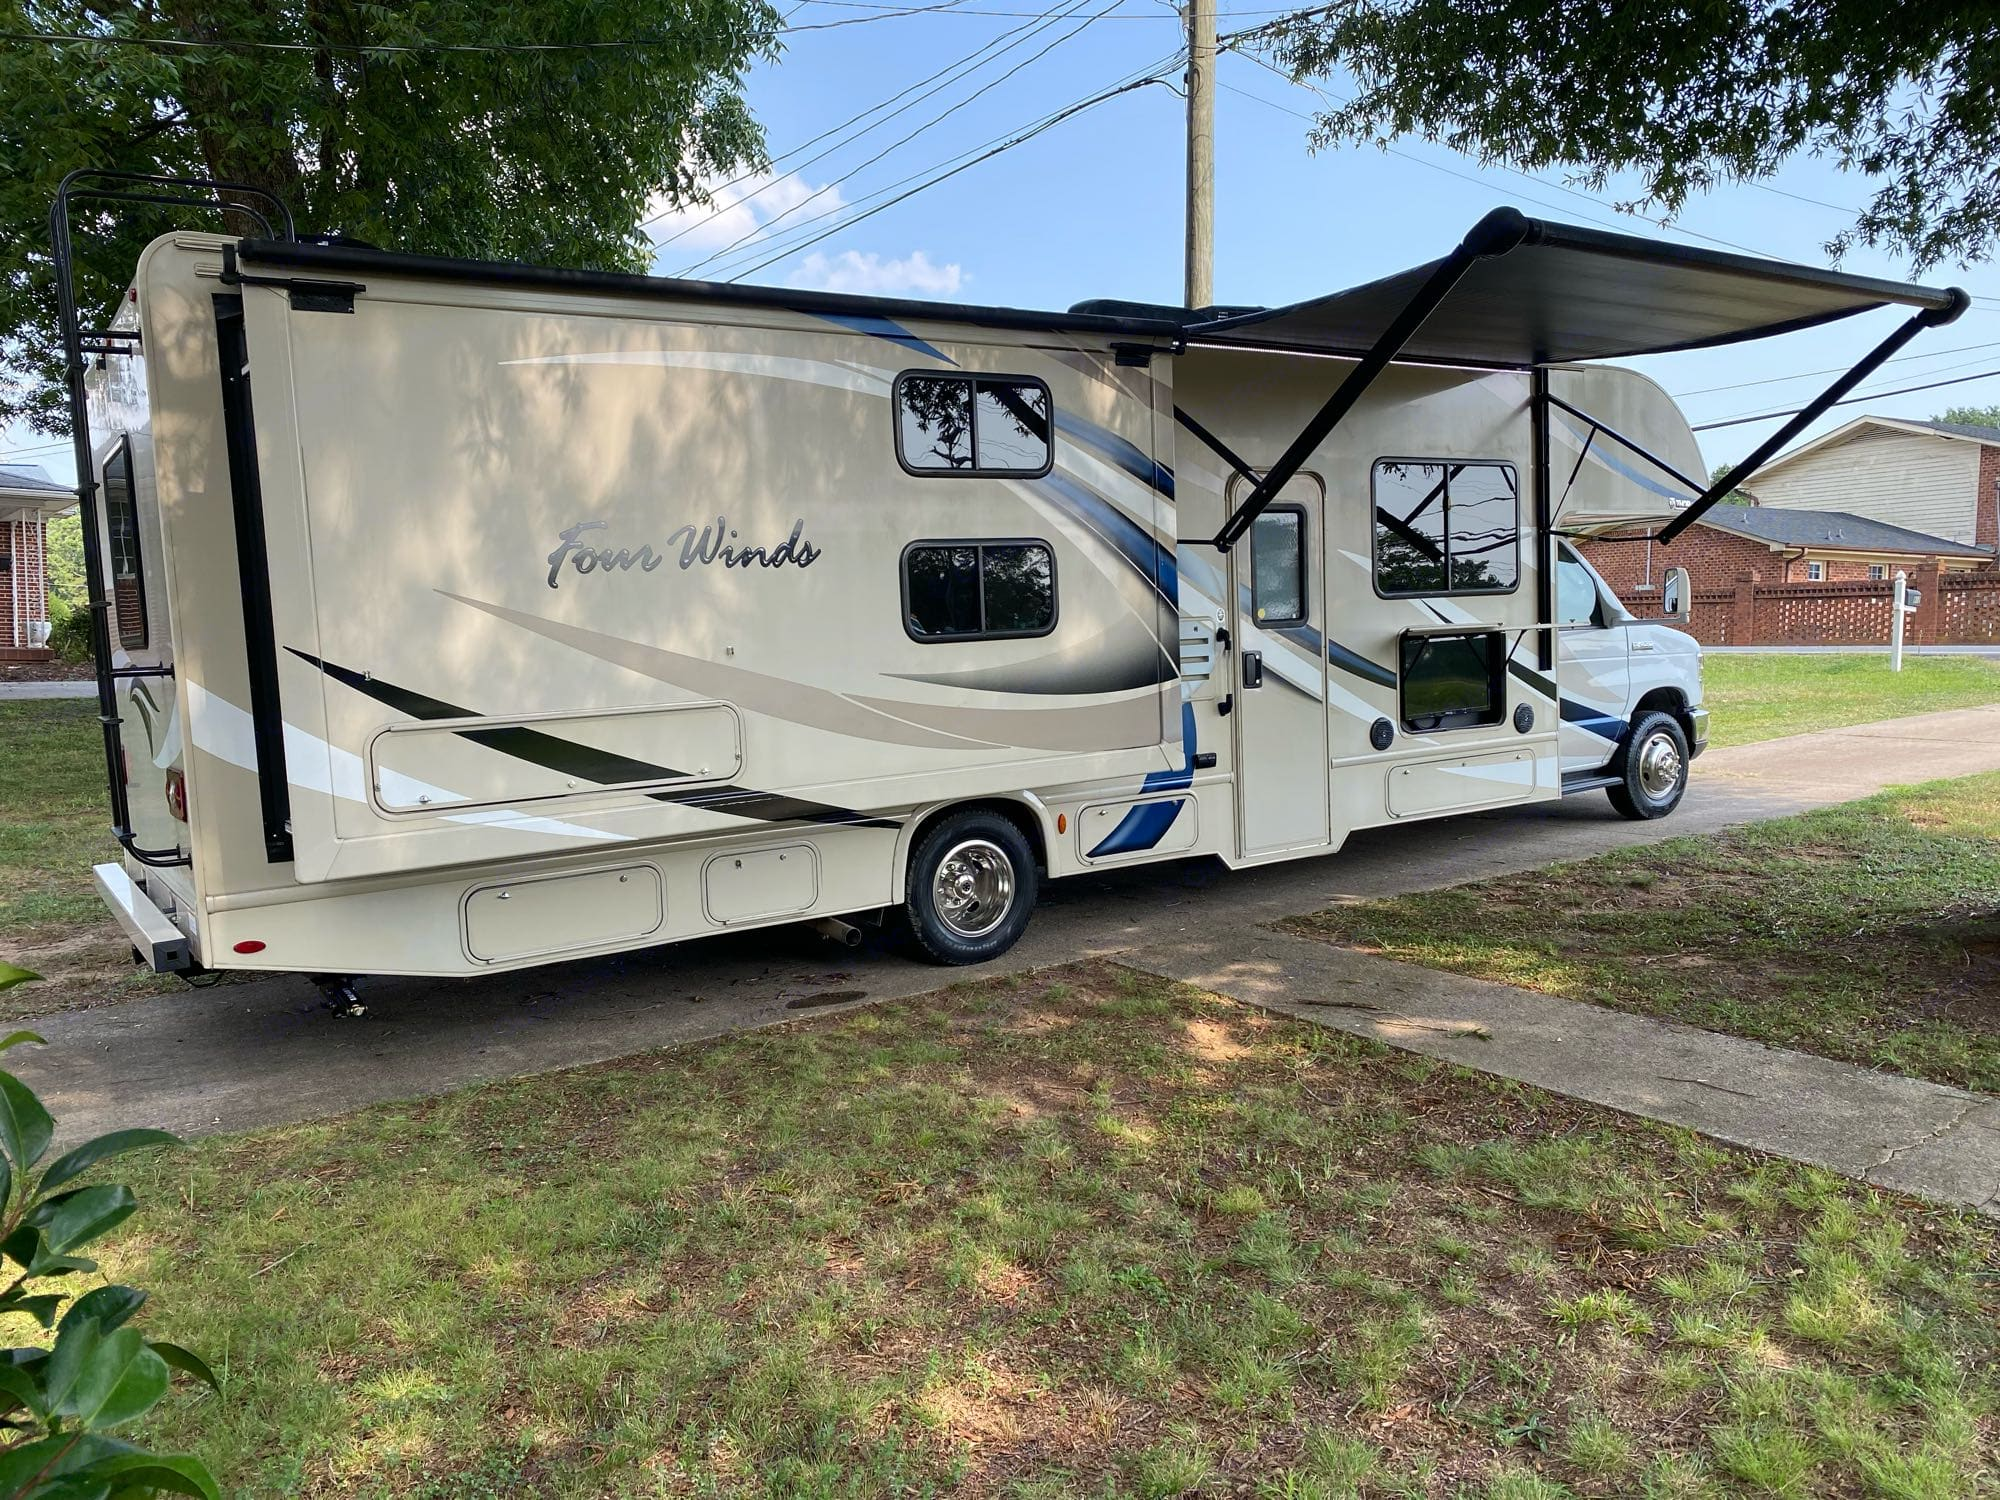 Electric awning. Outside TV. Surround sound outdoor/indoor speakers with bluetooth. . Thor Motor Coach Four Winds 2018